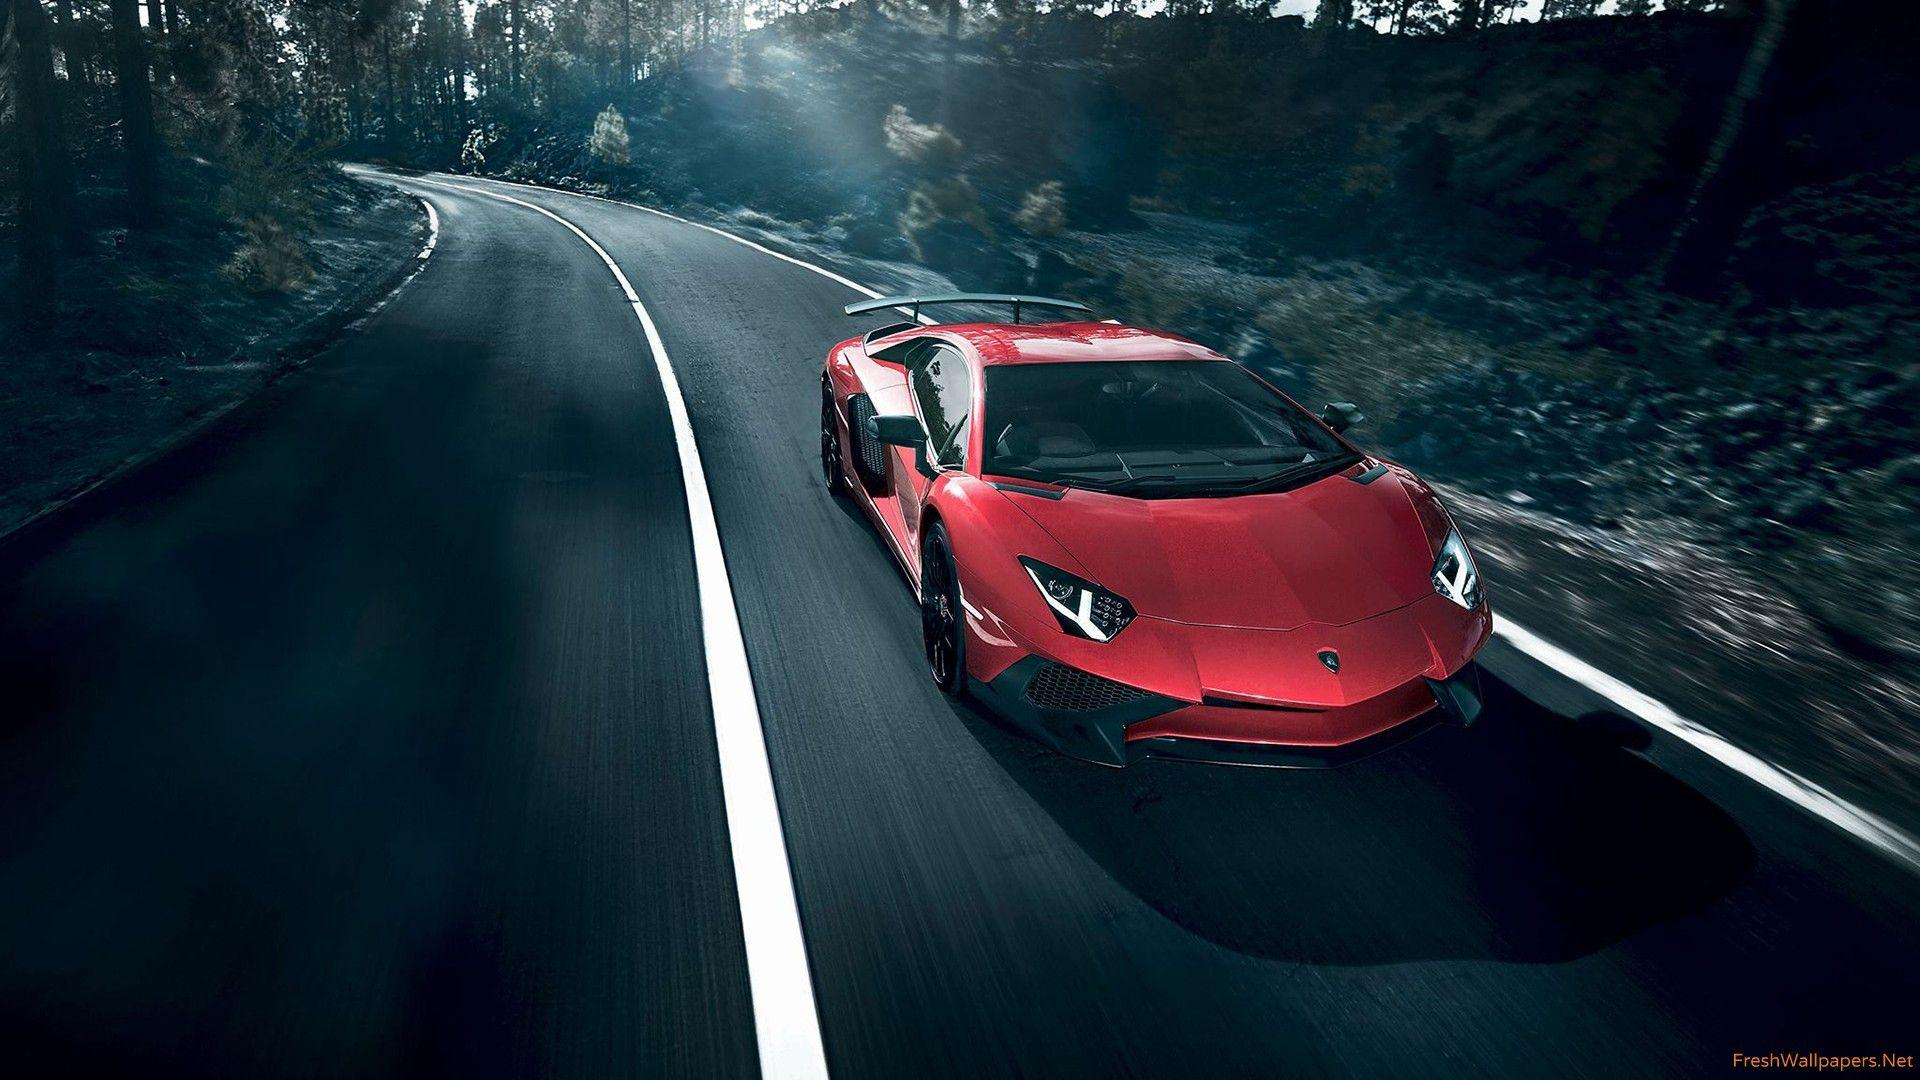 Lamborghini Aventador Sv Wallpapers Wallpaper Cave